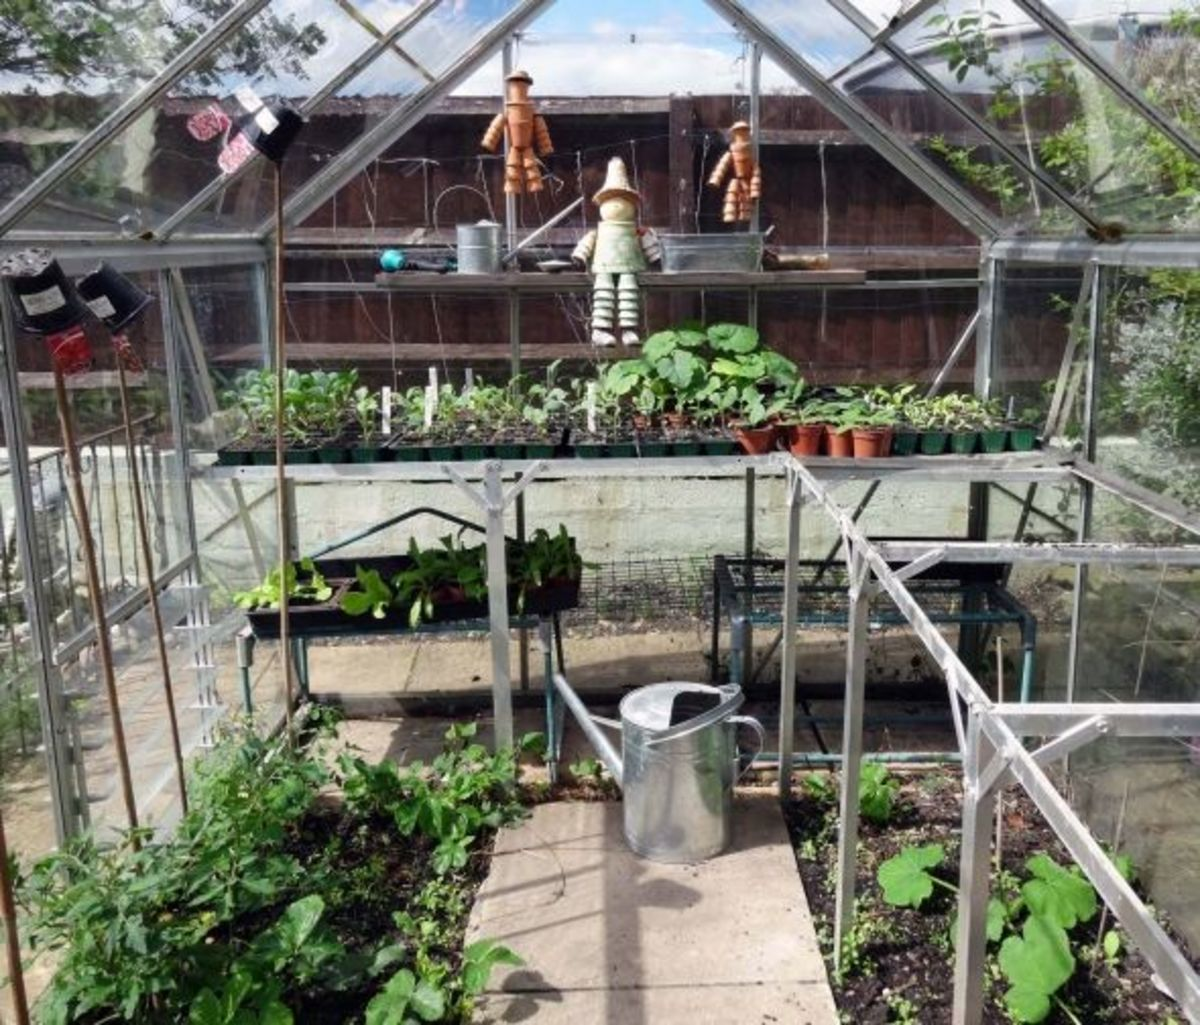 Greenhouse in May